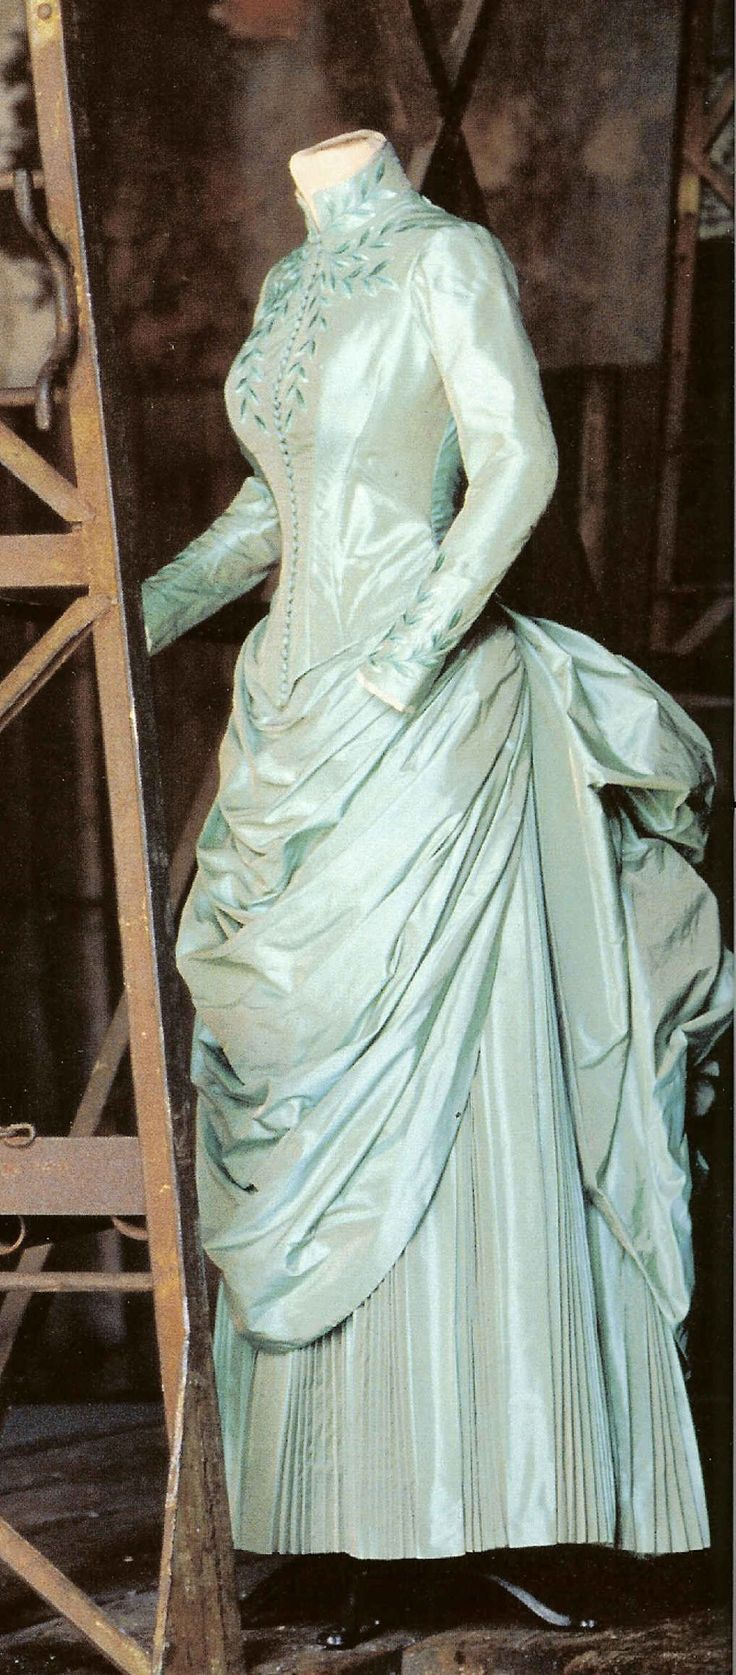 Mina's Blue/Green Gown from Dracula.  I love the costumes in this film, but the movie is supposed to take place in 1897, and the bustle-era costumes on Mina are from about 10-15 years EARLIER, while her best friend Lucy has styles more typical of the 1890s, with a weird modern edge.